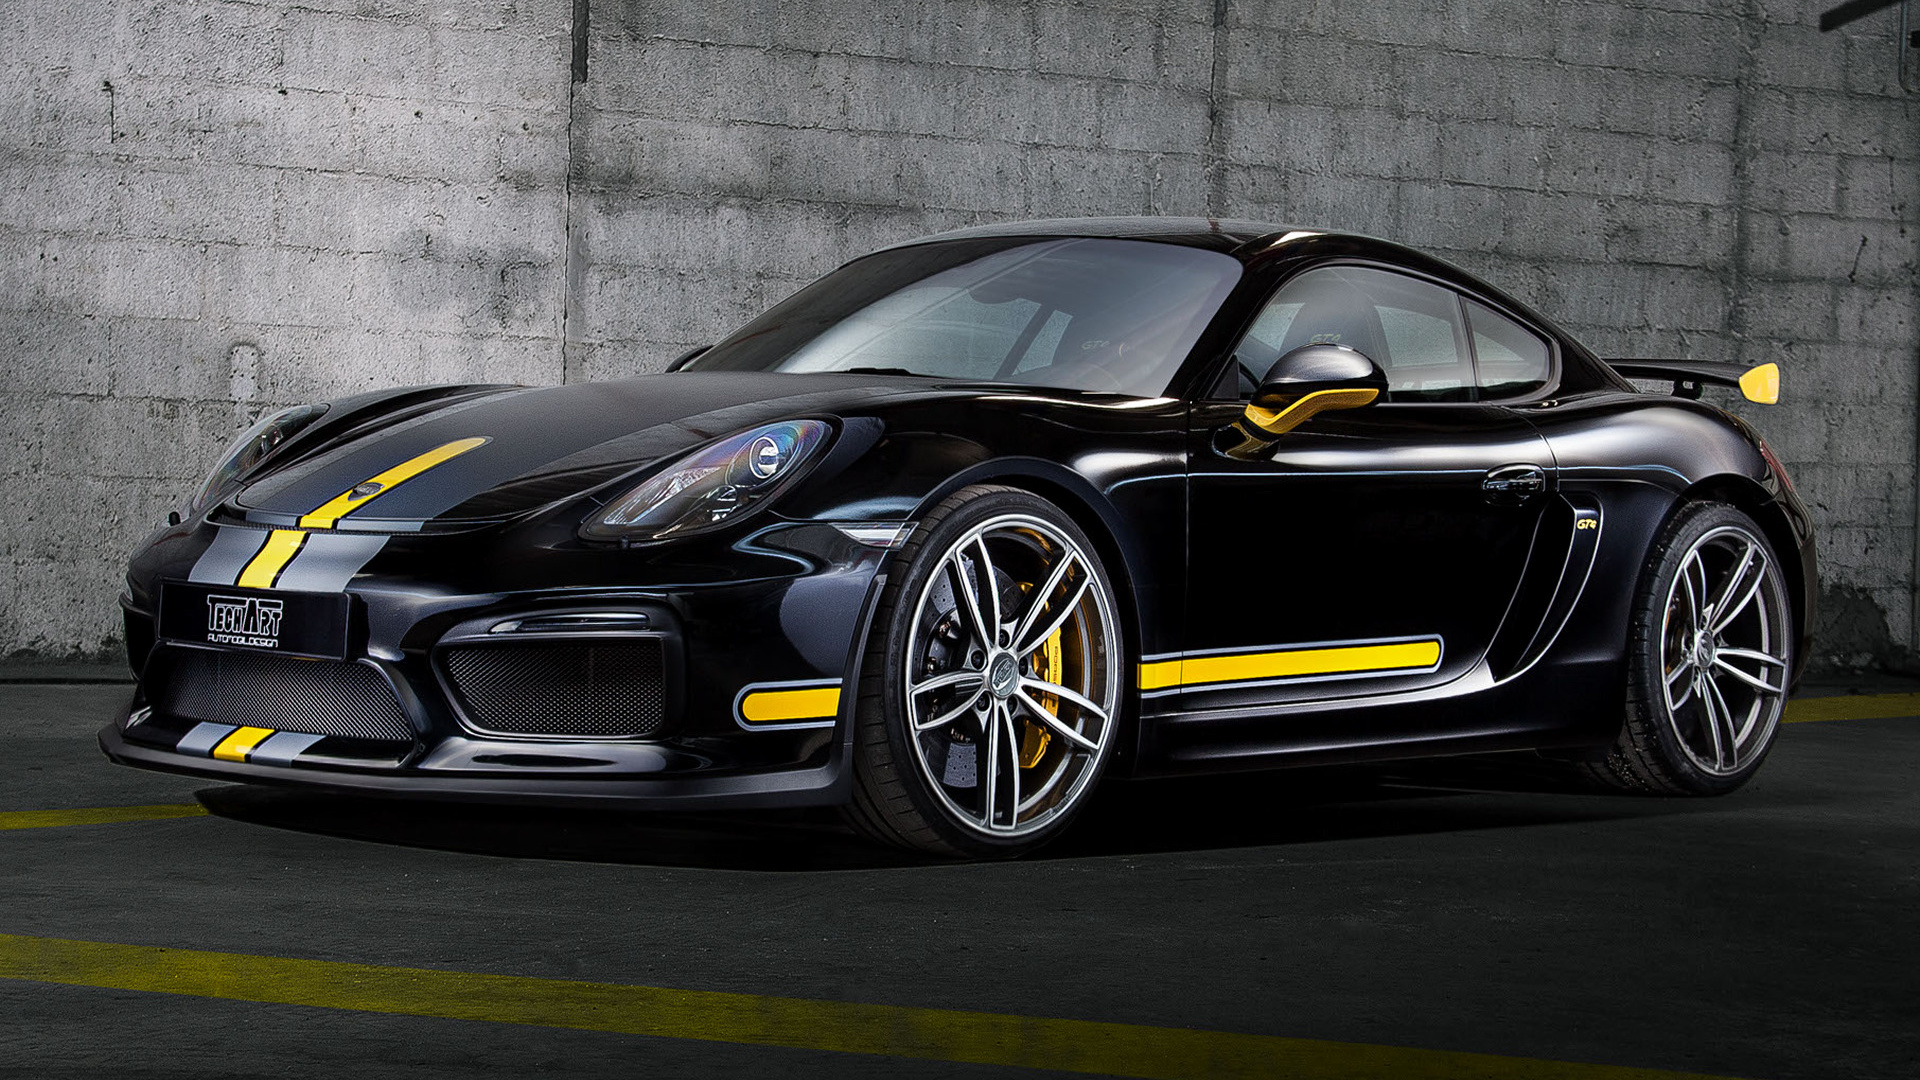 Porsche Boxster Wallpaper Hd Porsche Cayman Gt4 By Techart 2016 Wallpapers And Hd